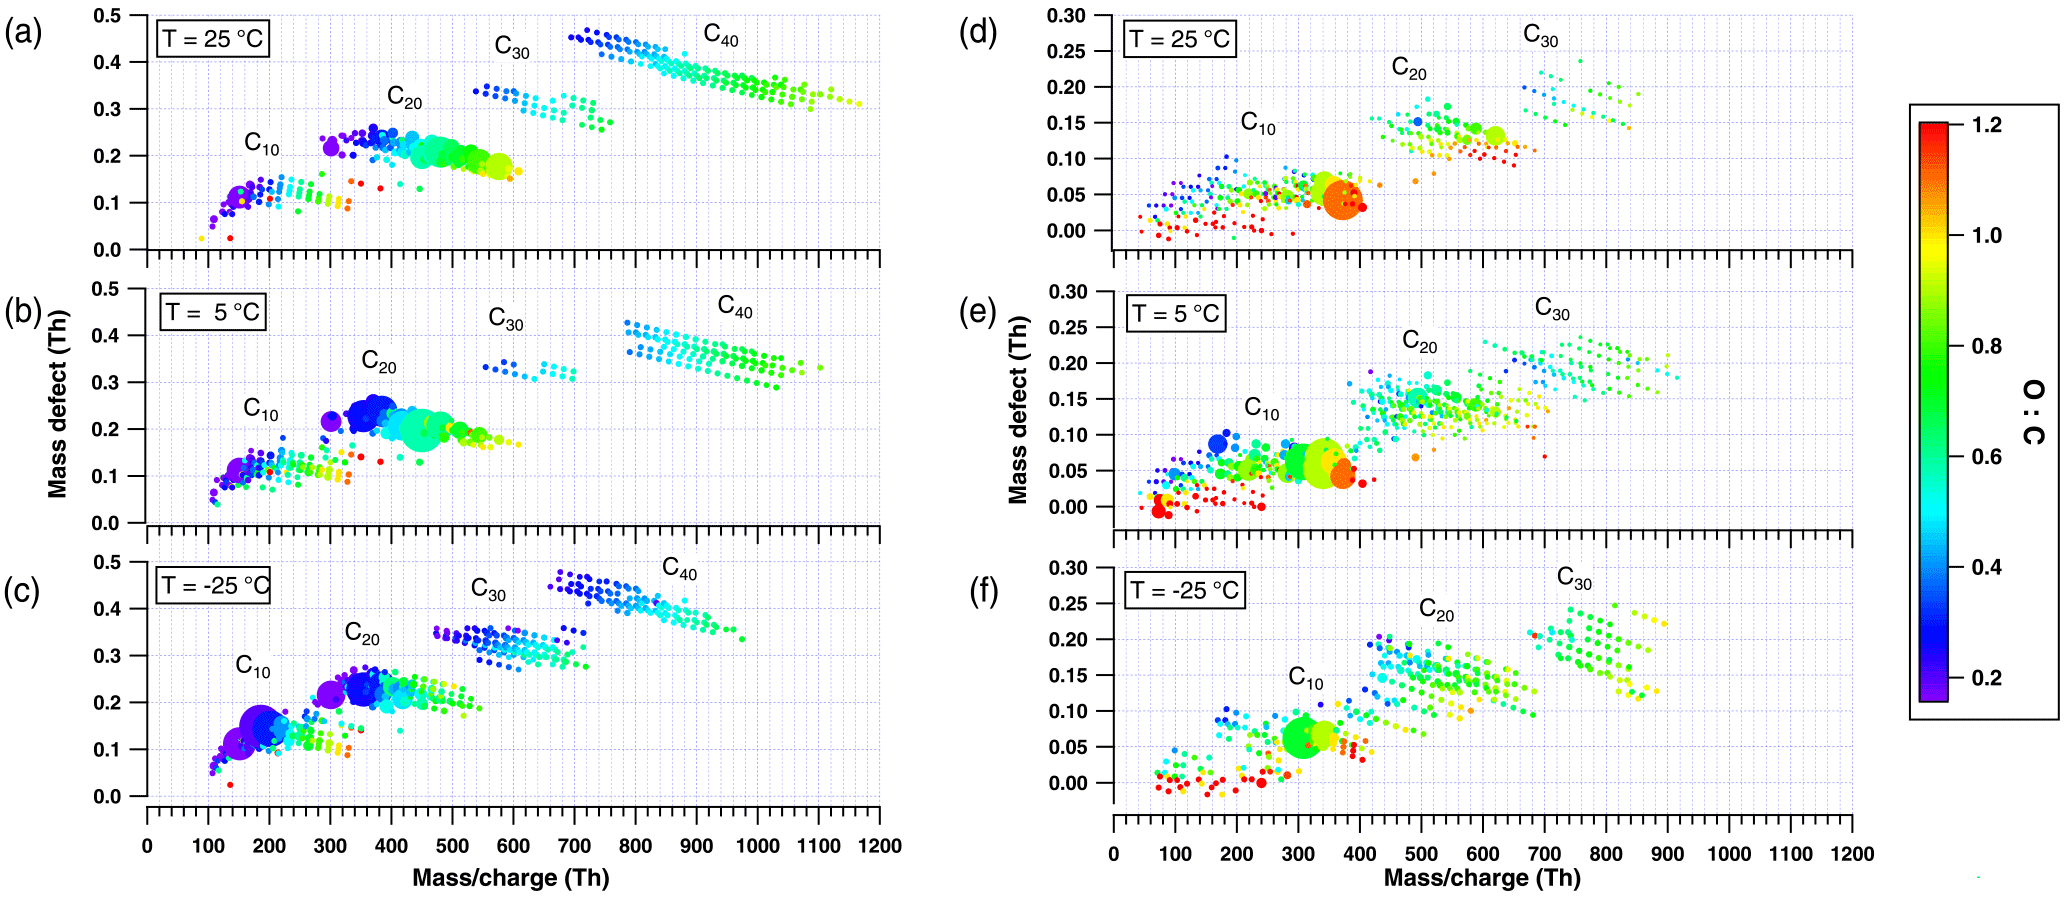 ACP - Influence of temperature on the molecular composition